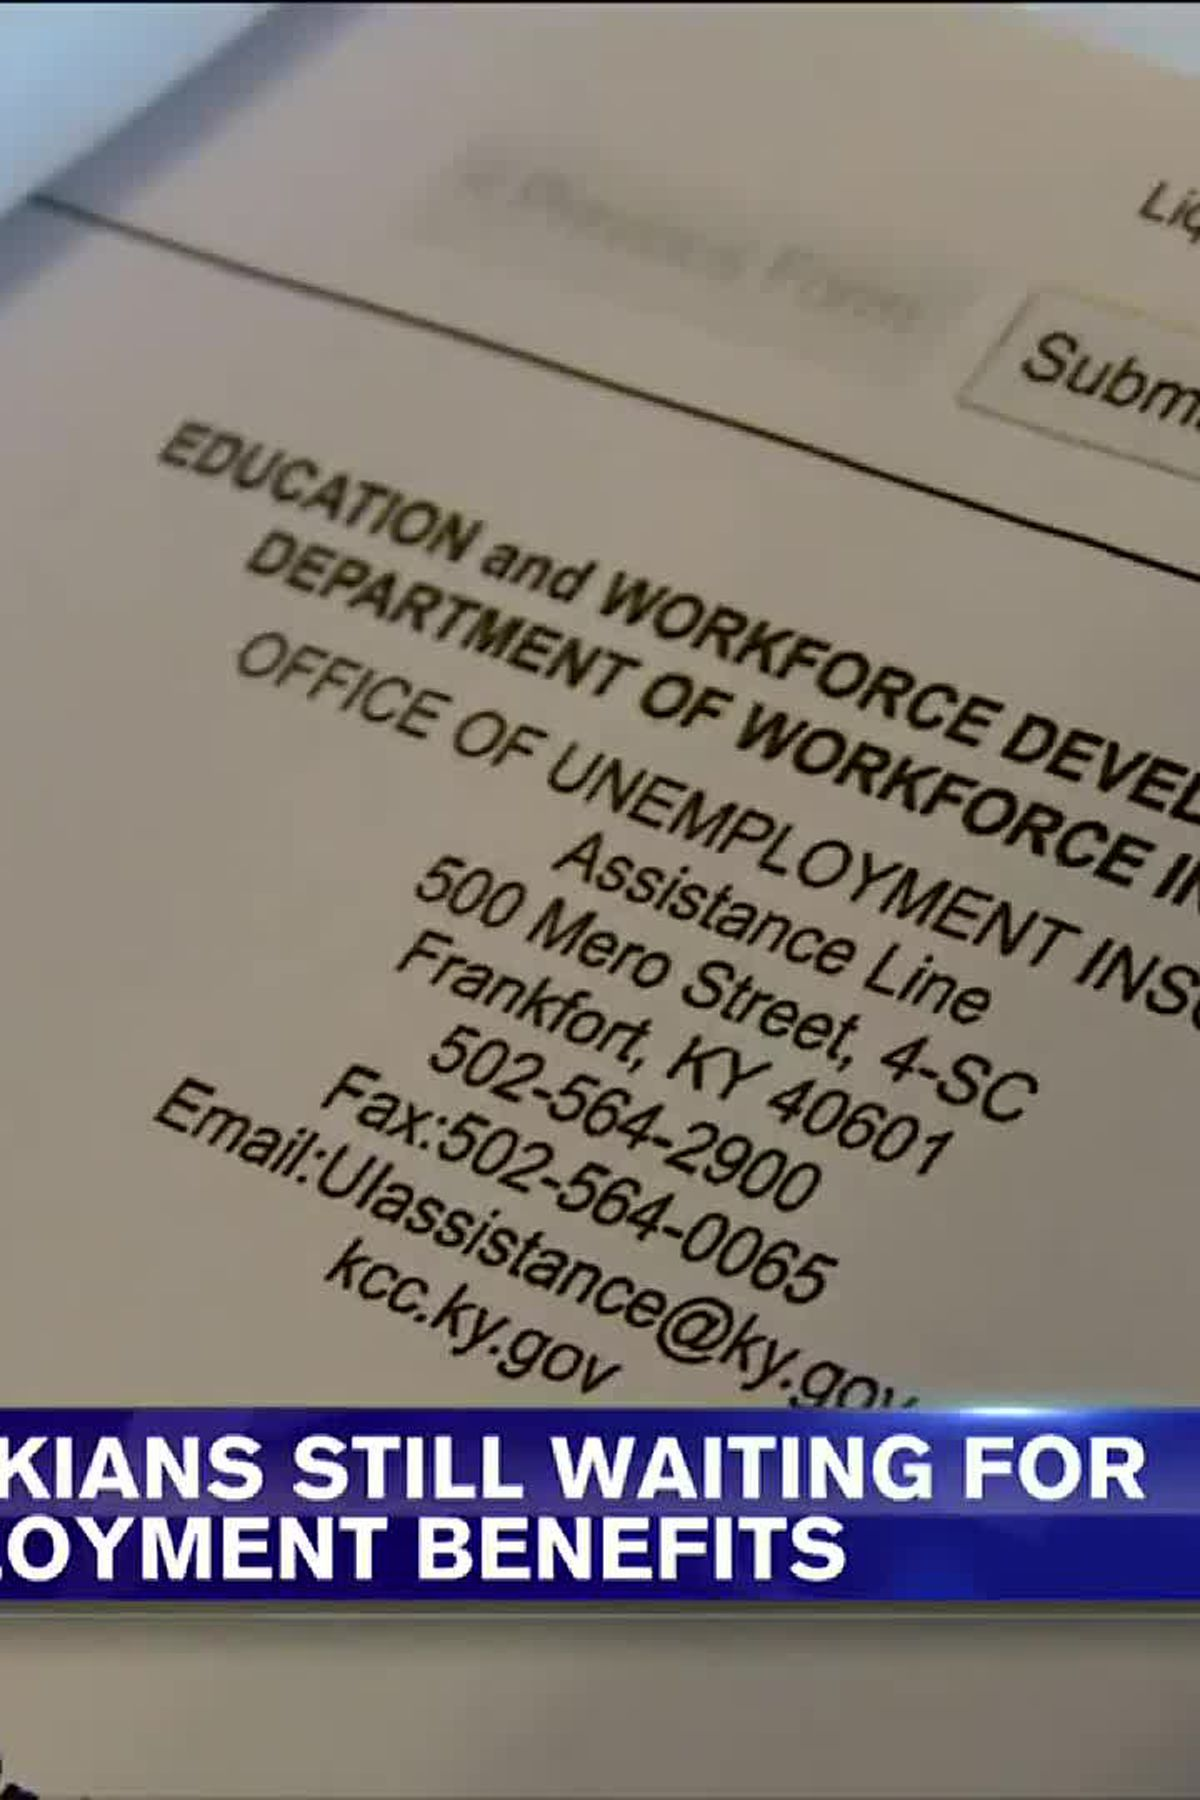 Many Still Waiting For Unemployment Benefits Eastern Kentucky Counties Above State Average